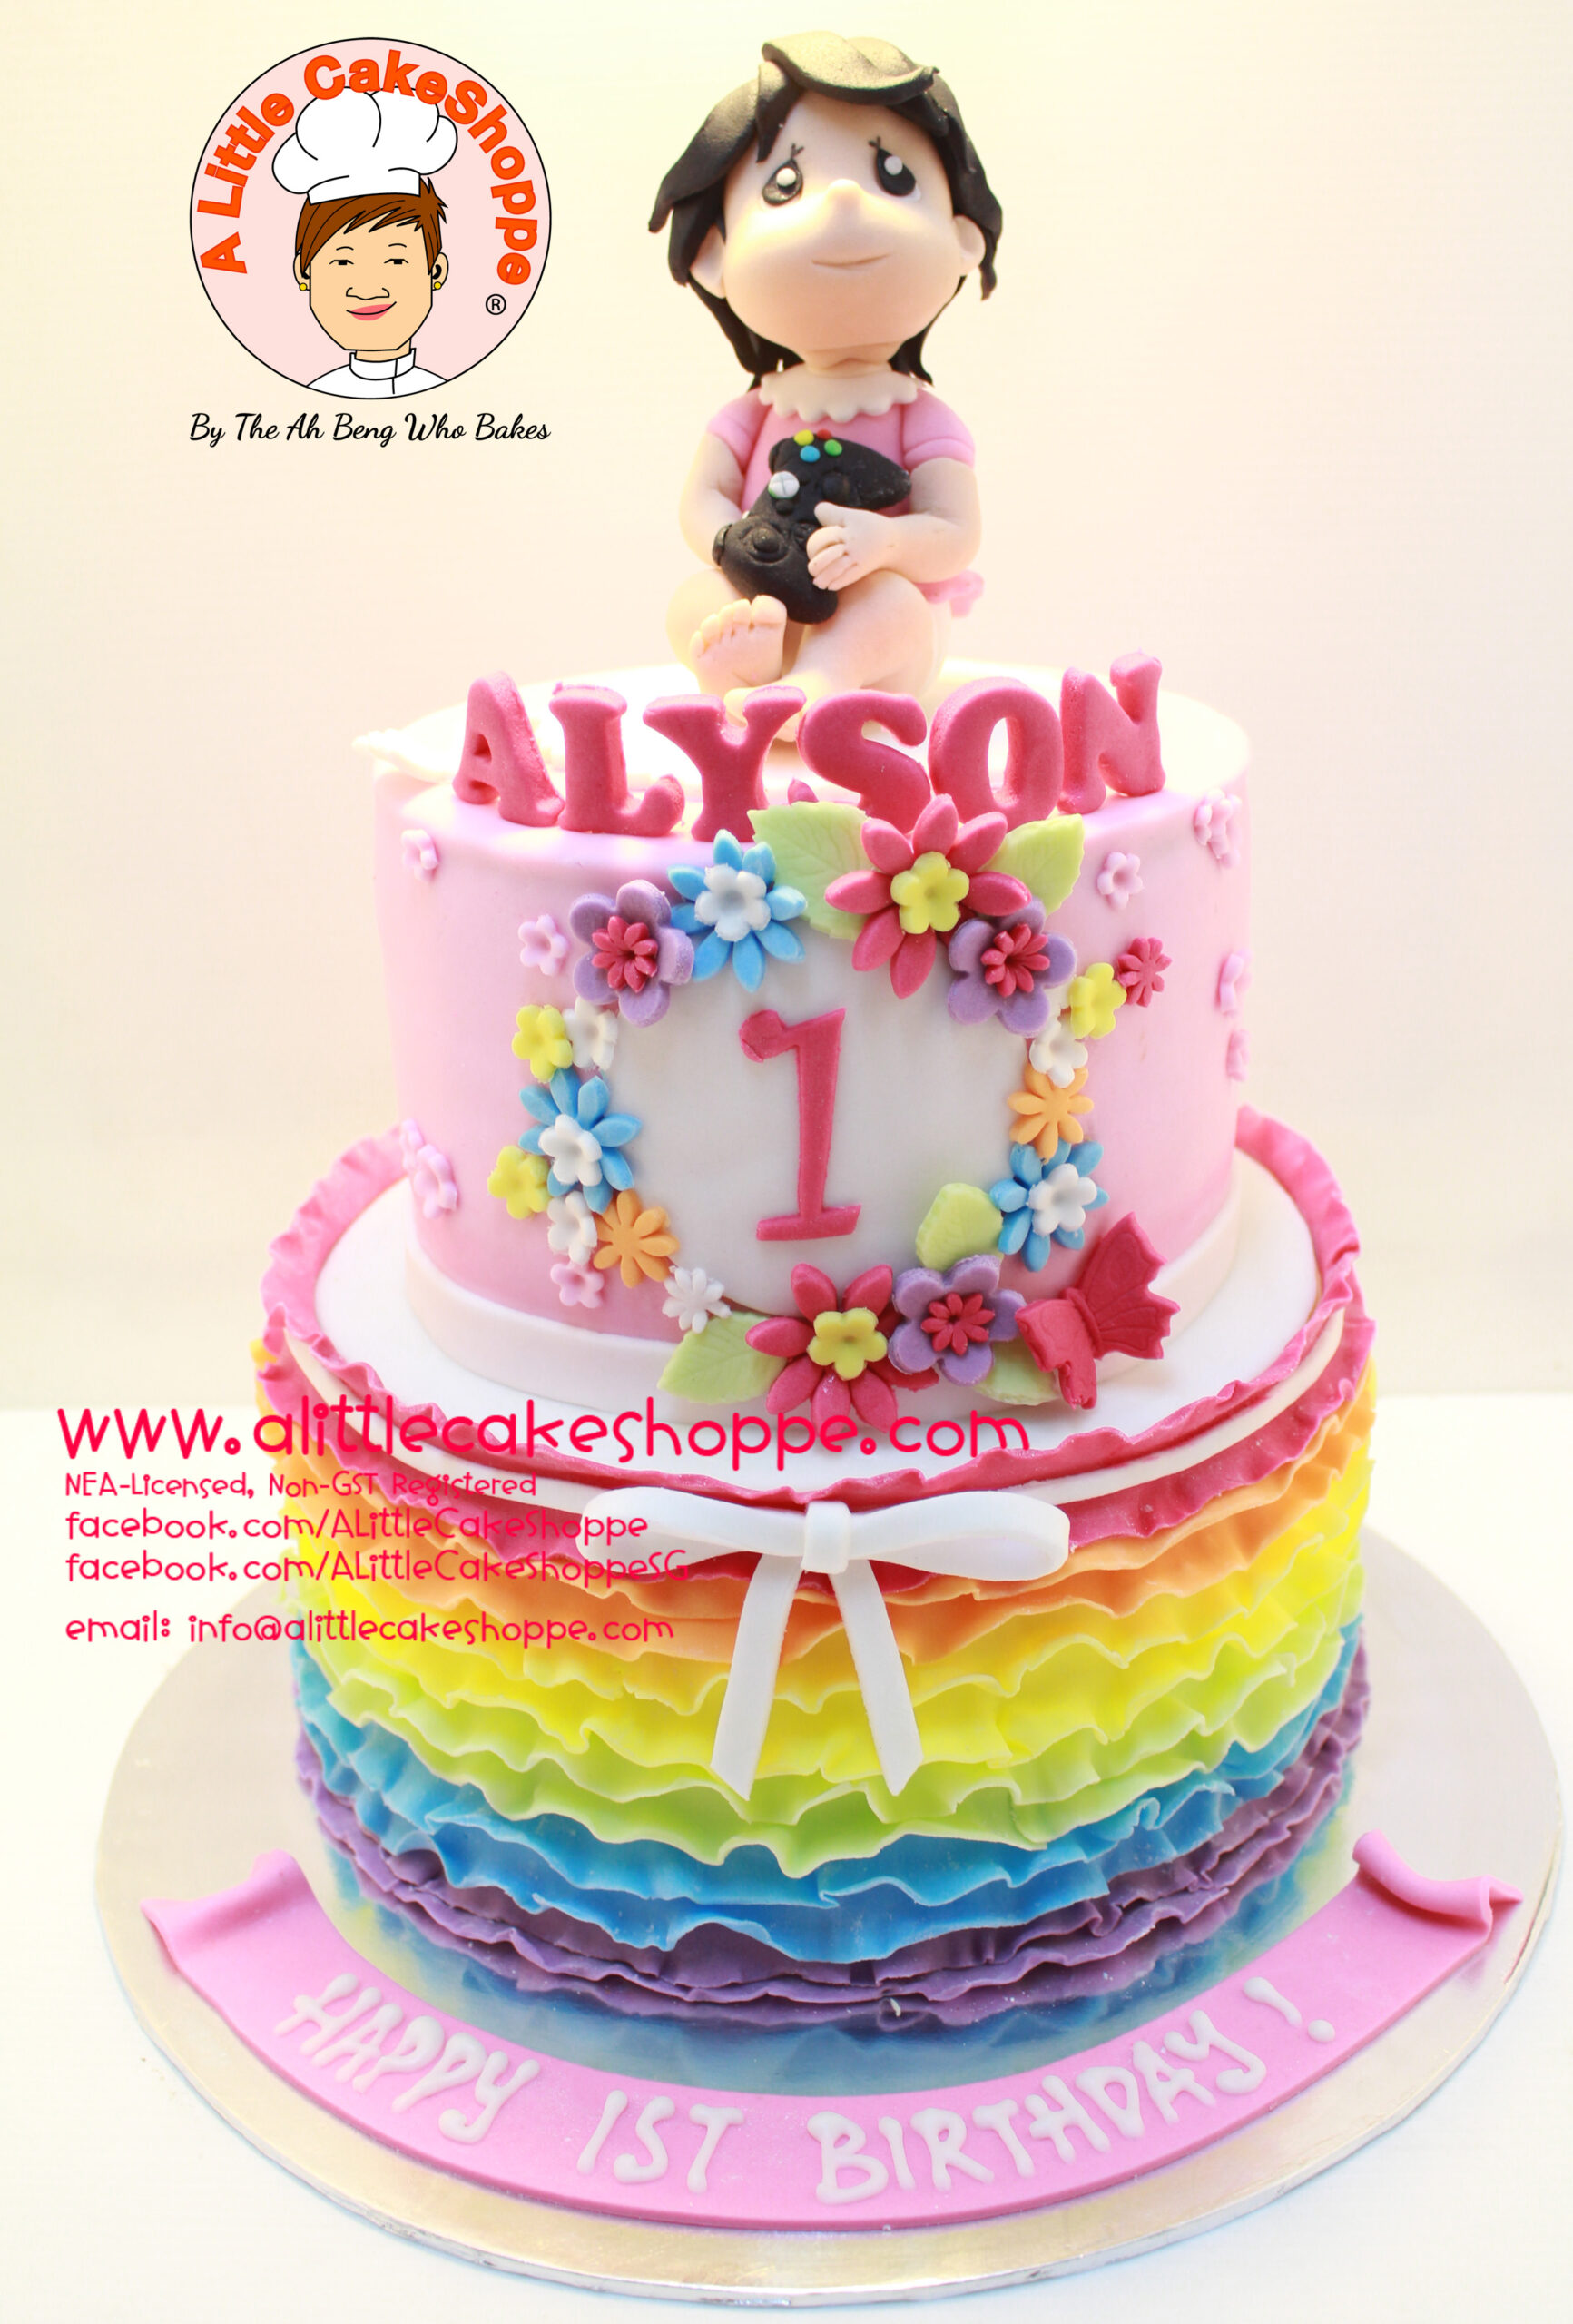 Best Customised Cake Shop Singapore custom cake 2D 3D birthday cake cupcakes desserts wedding corporate events anniversary 1st birthday 21st birthday fondant fresh cream buttercream cakes alittlecakeshoppe a little cake shoppe compliments review singapore bakers SG cake shop cakeshop ah beng who bakes girl